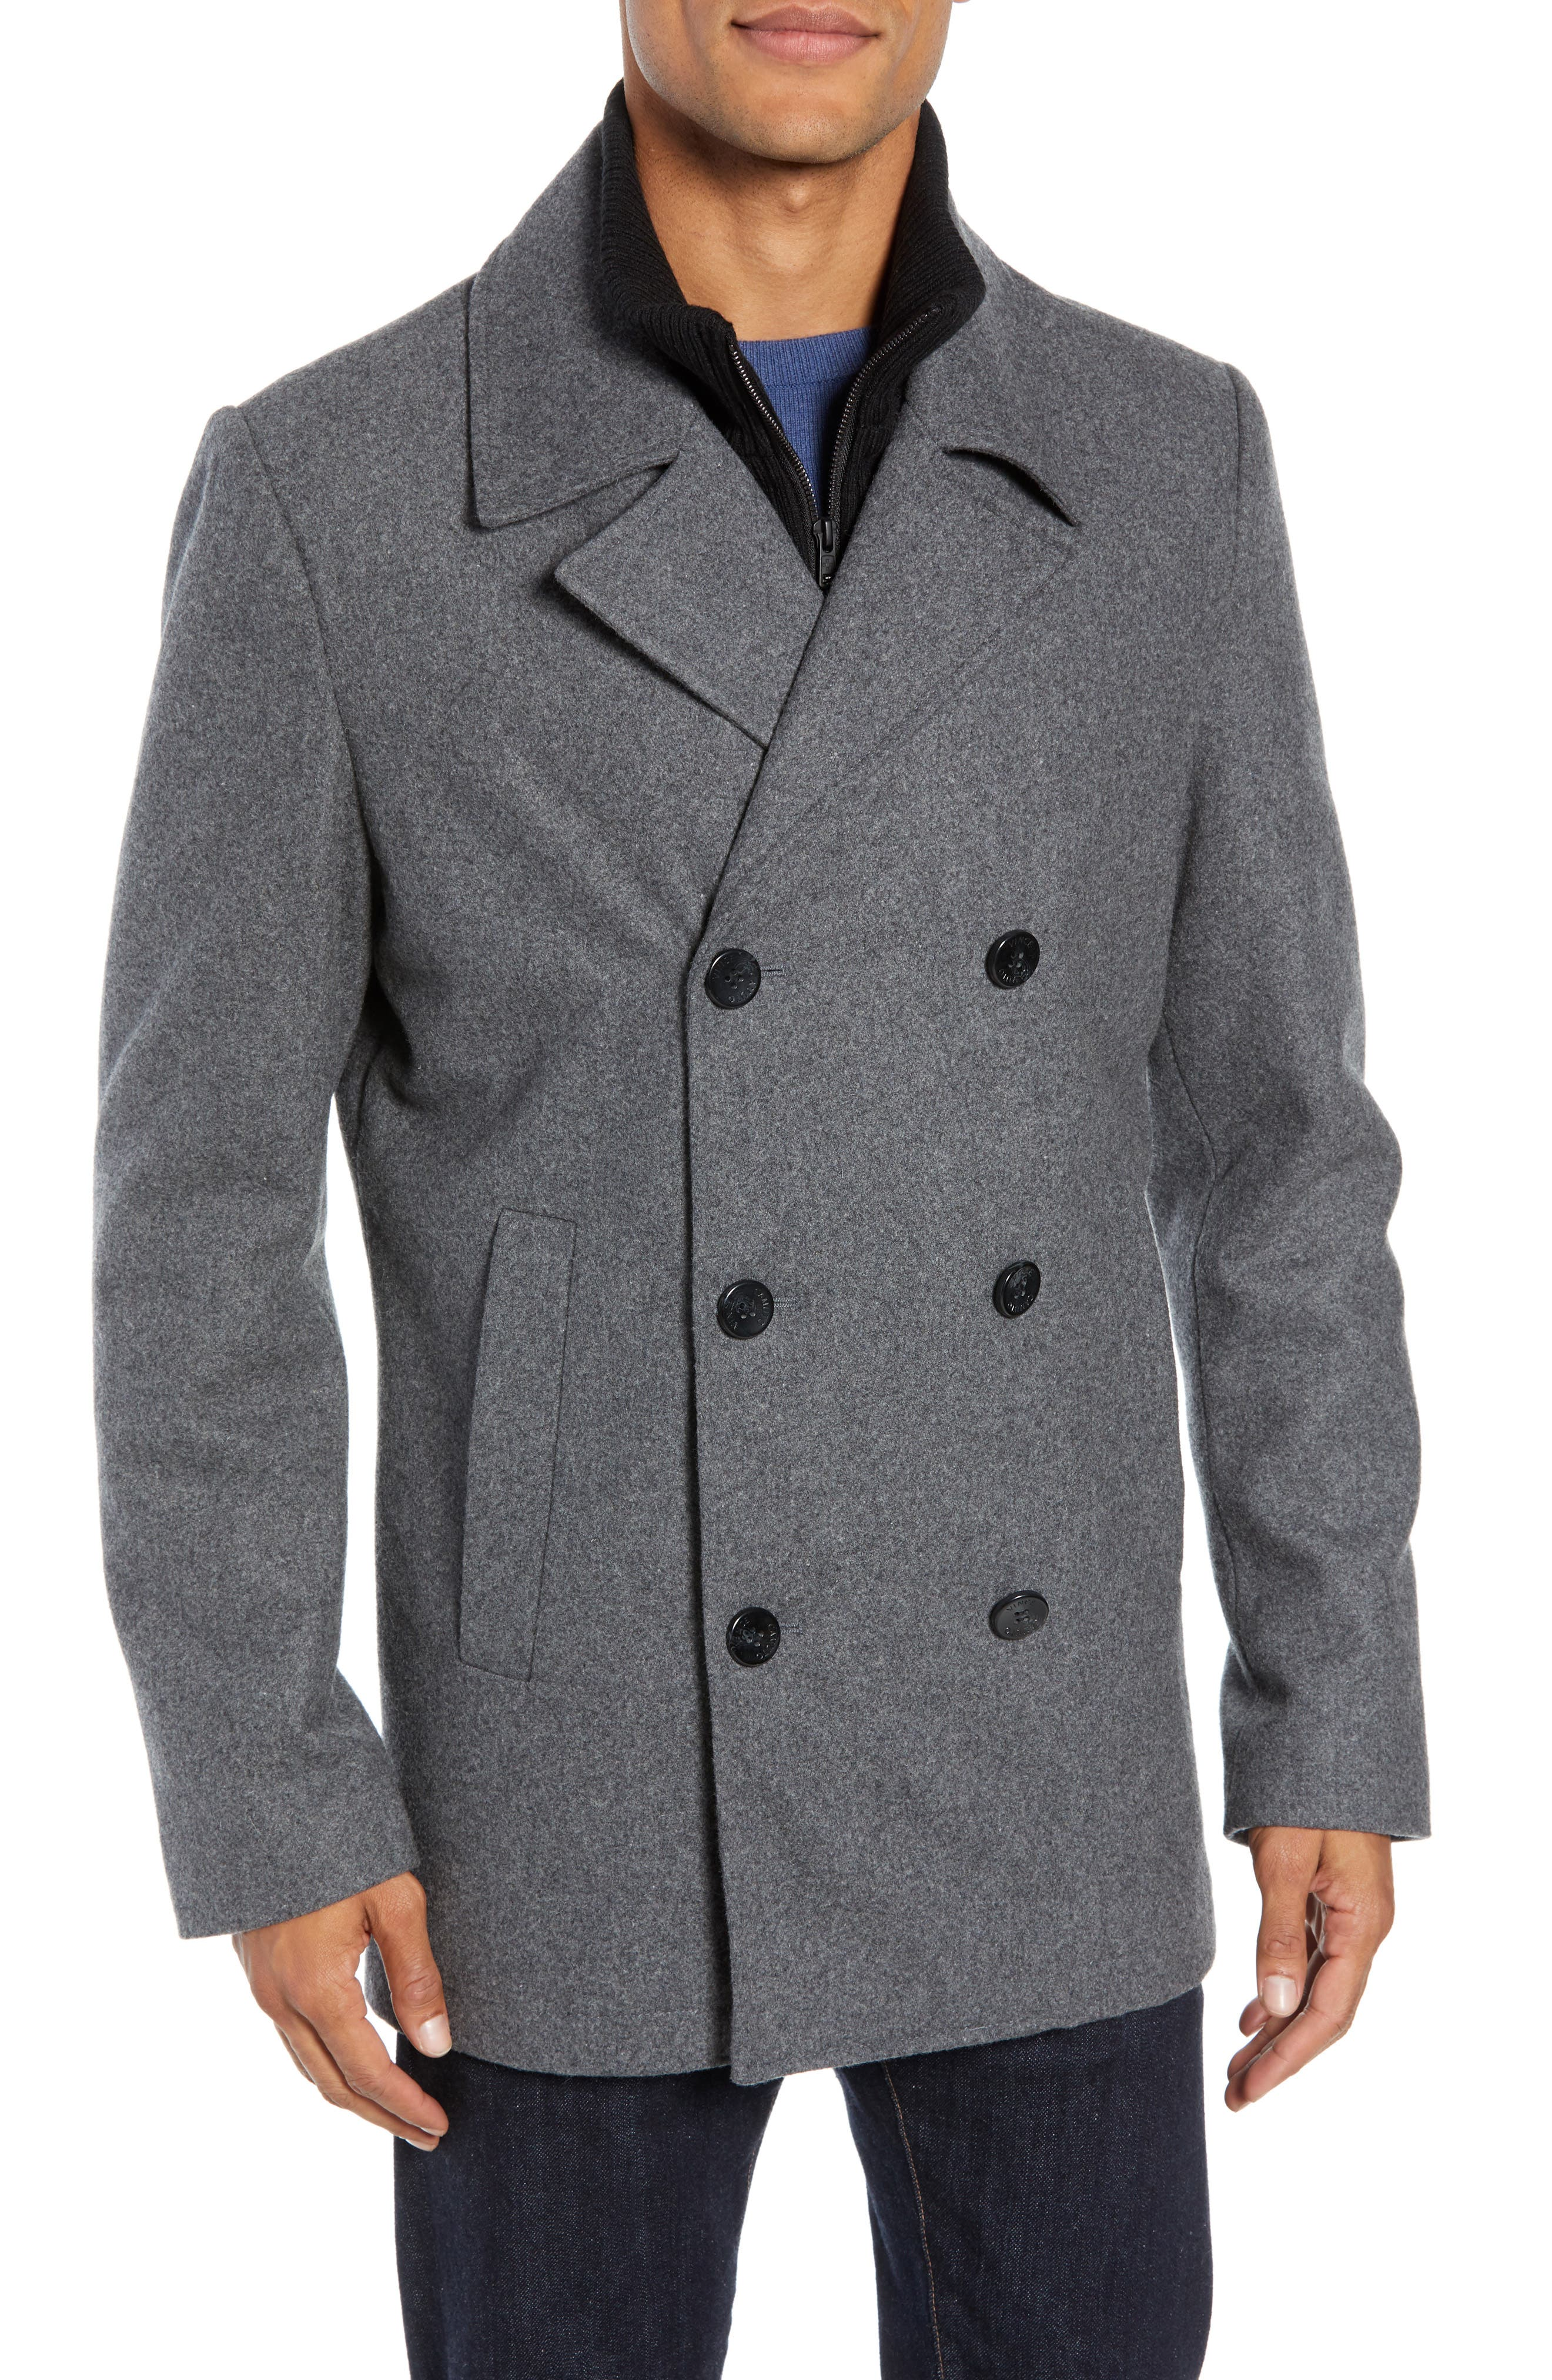 VINCE CAMUTO, Dock Peacoat, Main thumbnail 1, color, HEATHER GREY